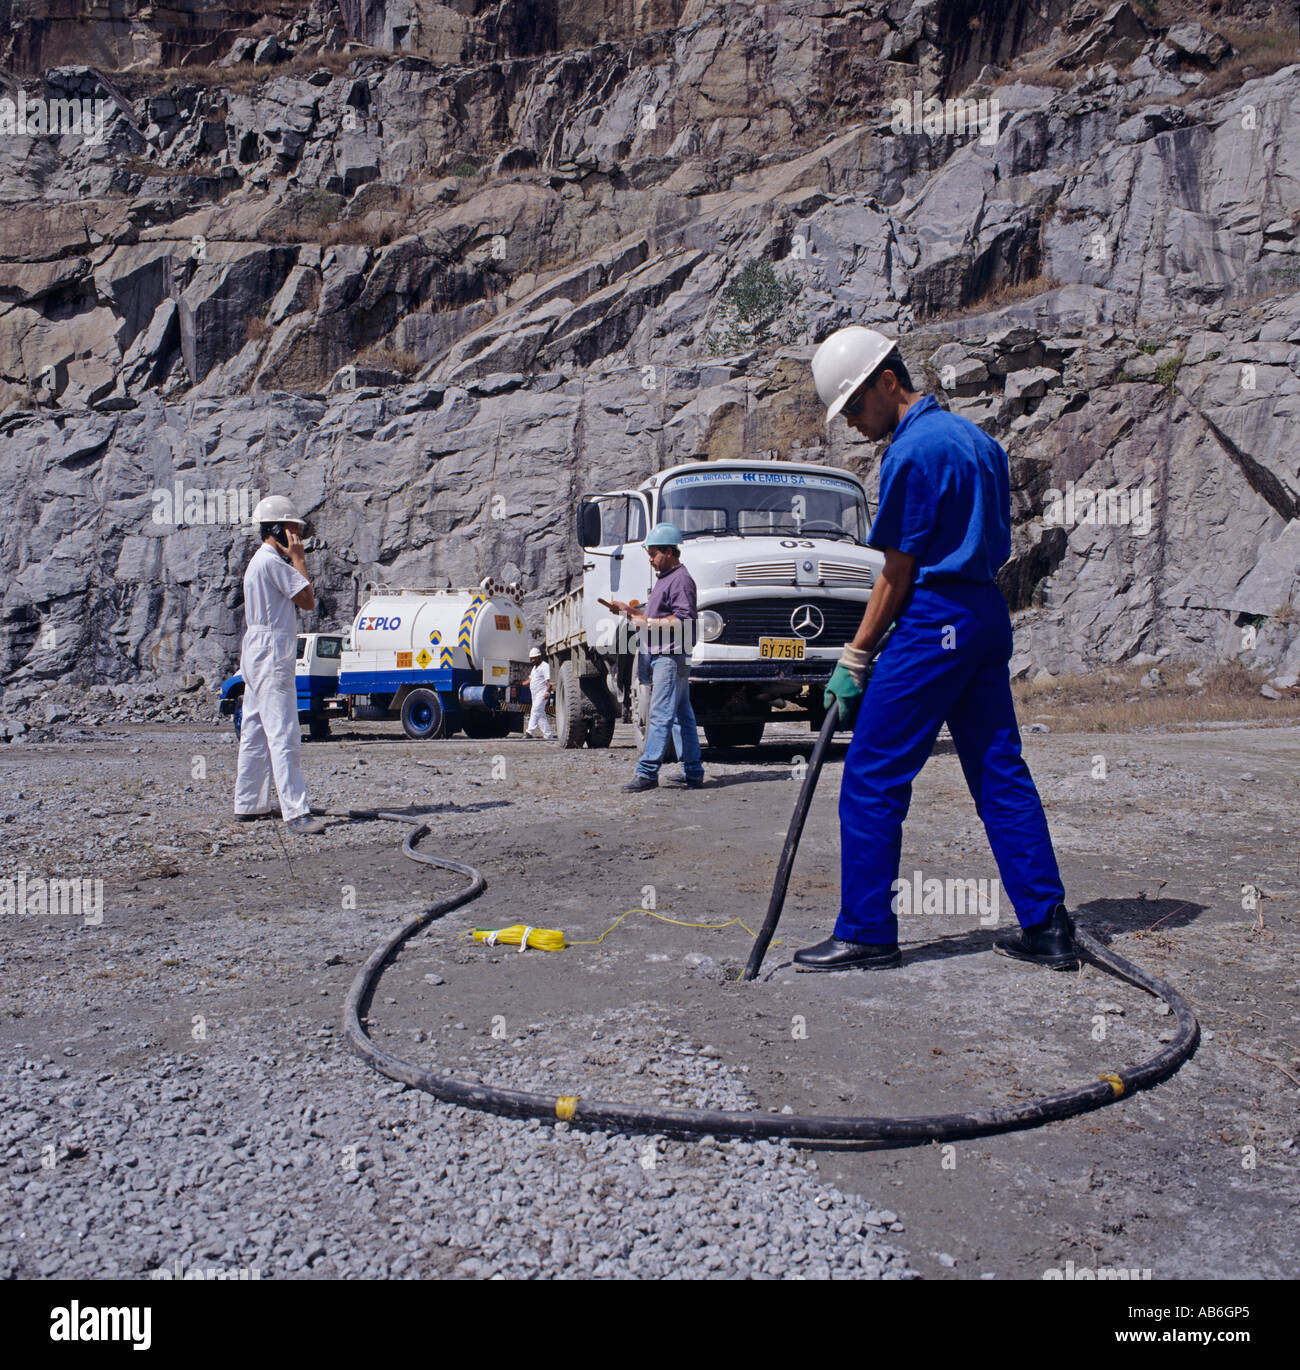 Drilling holes for explosives in mining industry, Brazil - Stock Image